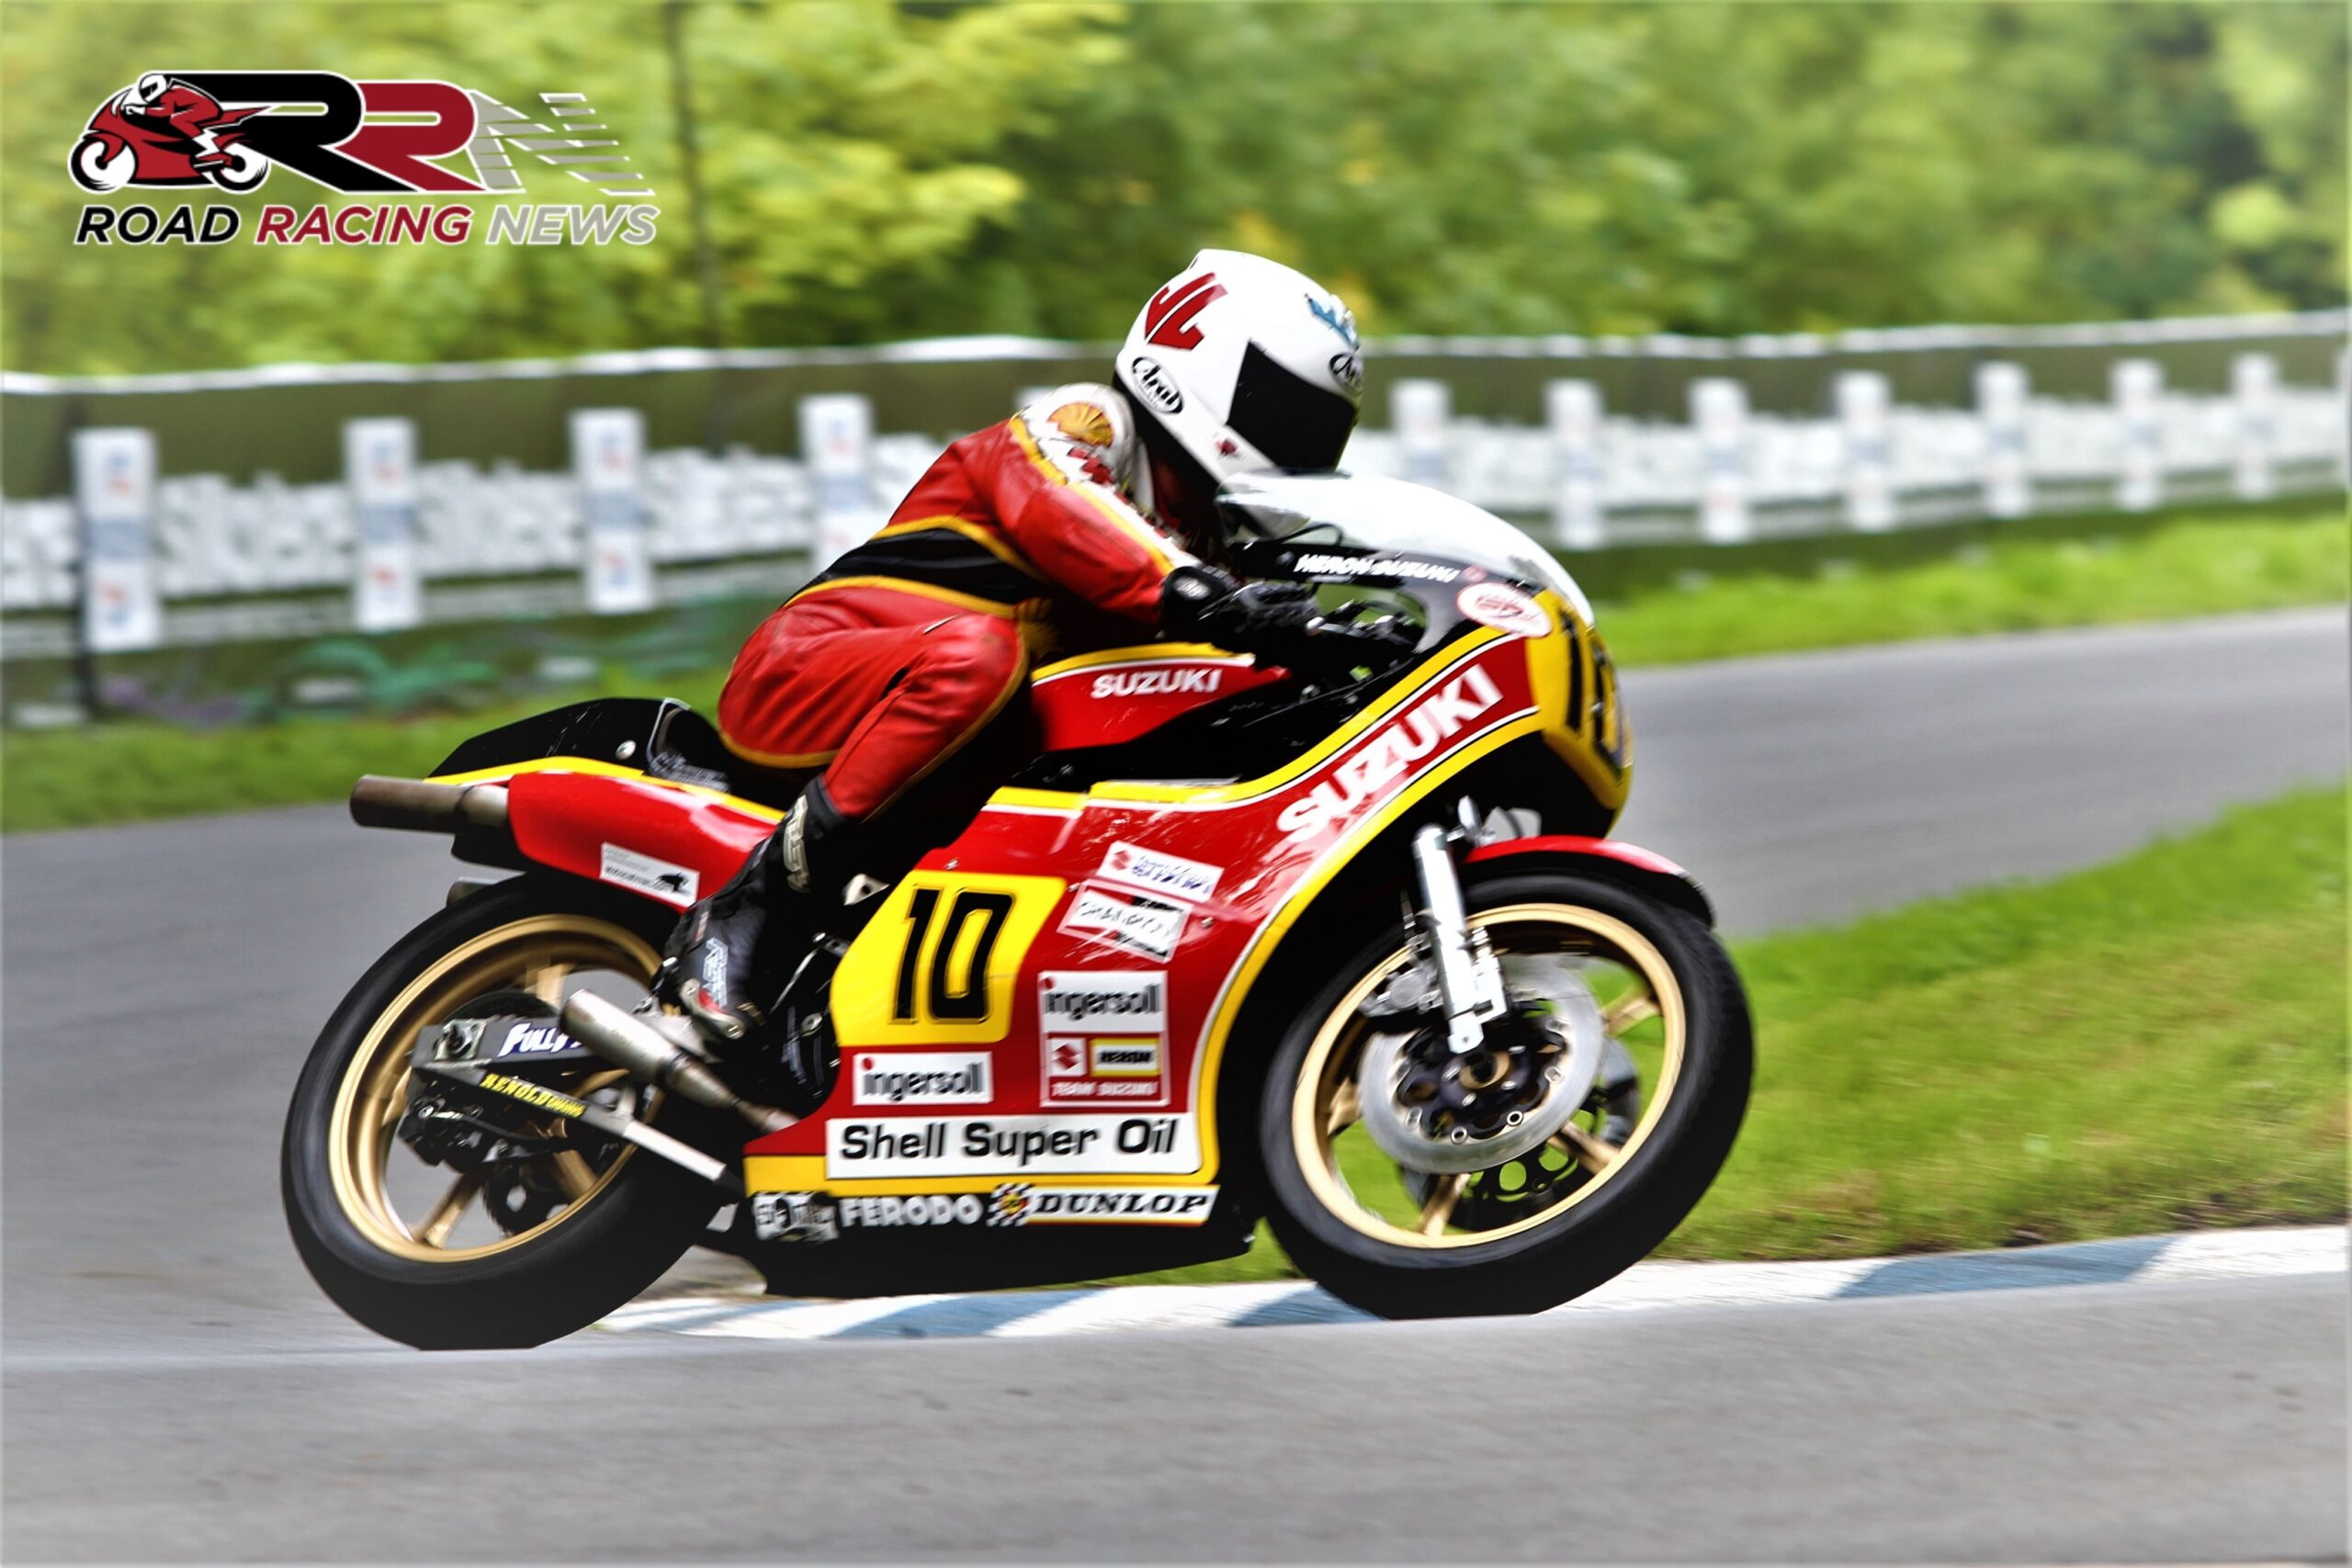 Barry Sheene Classic: Practice/Qualifying/Race Schedule